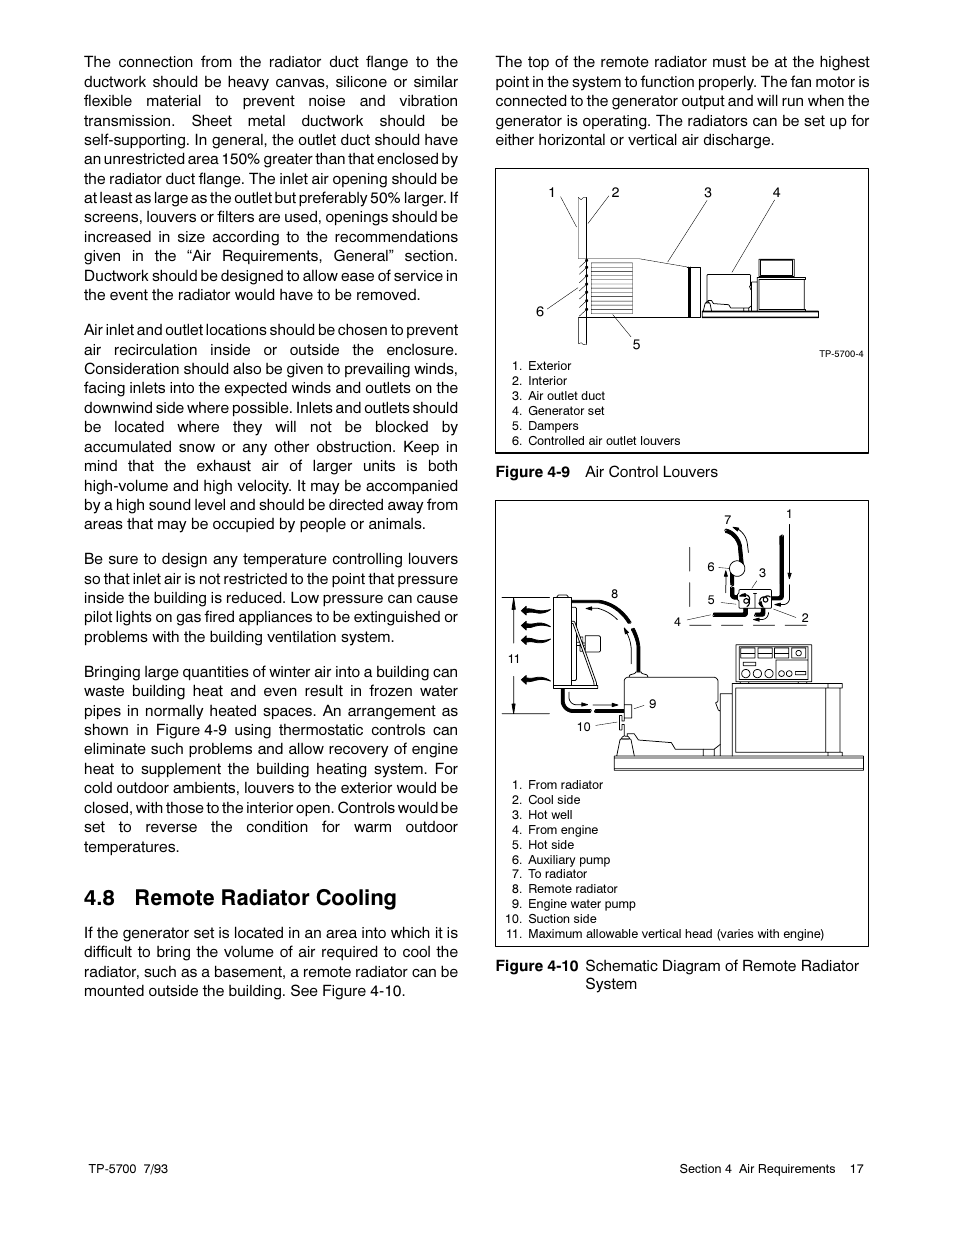 8 Remote Radiator Cooling Kohler Generator Sets 20 2800 Kw User Schematic Manual Page 29 56